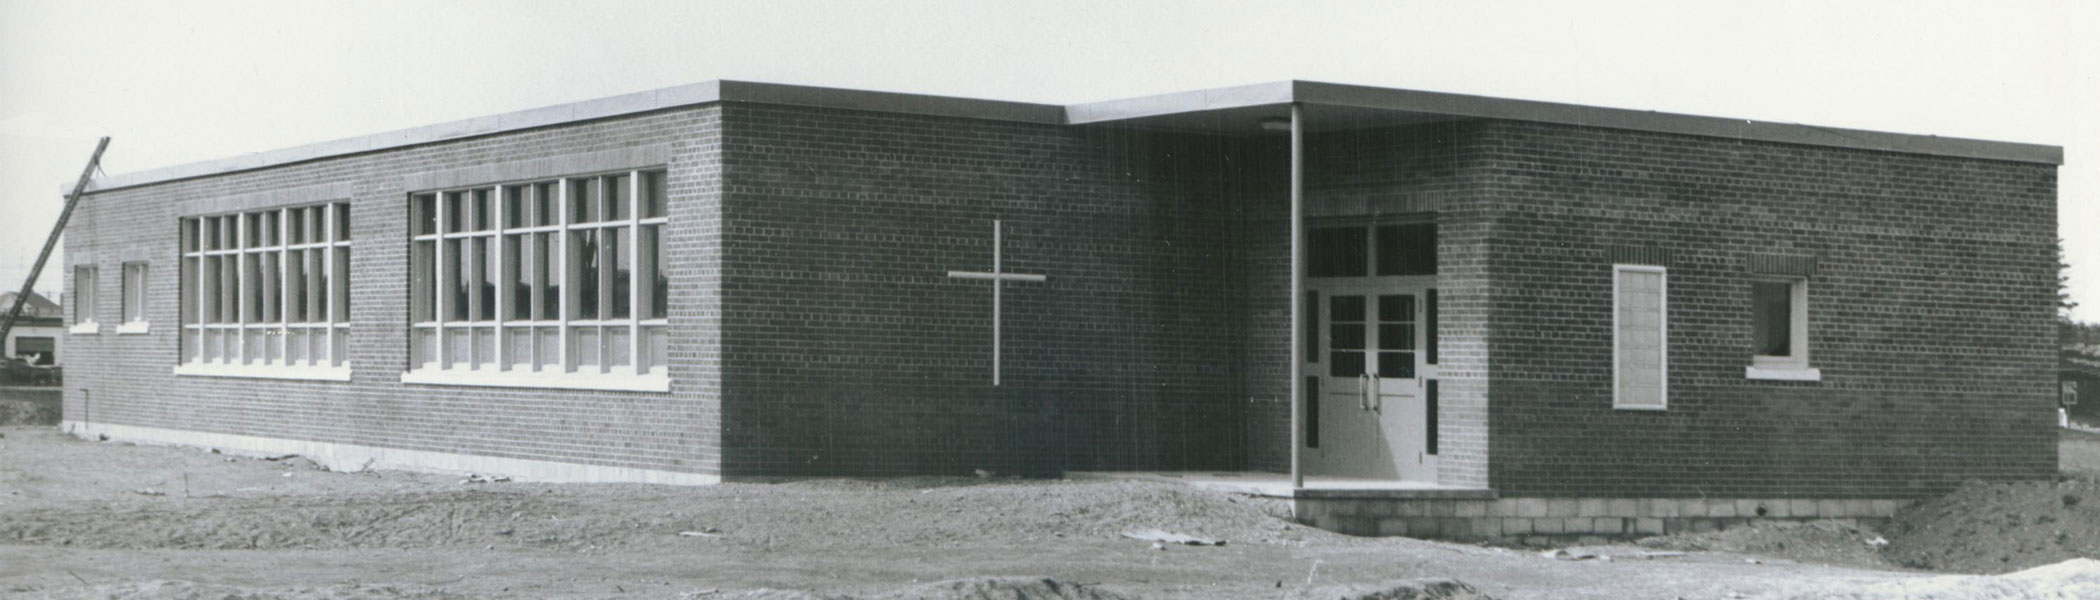 St. Pius X School on Wood St in 1954. The school built an addition in 1956 to double the number of classrooms. In 2012 the school was razed and rebuilt, opening in September 2013.  Image courtesy of the Brant Historical Society